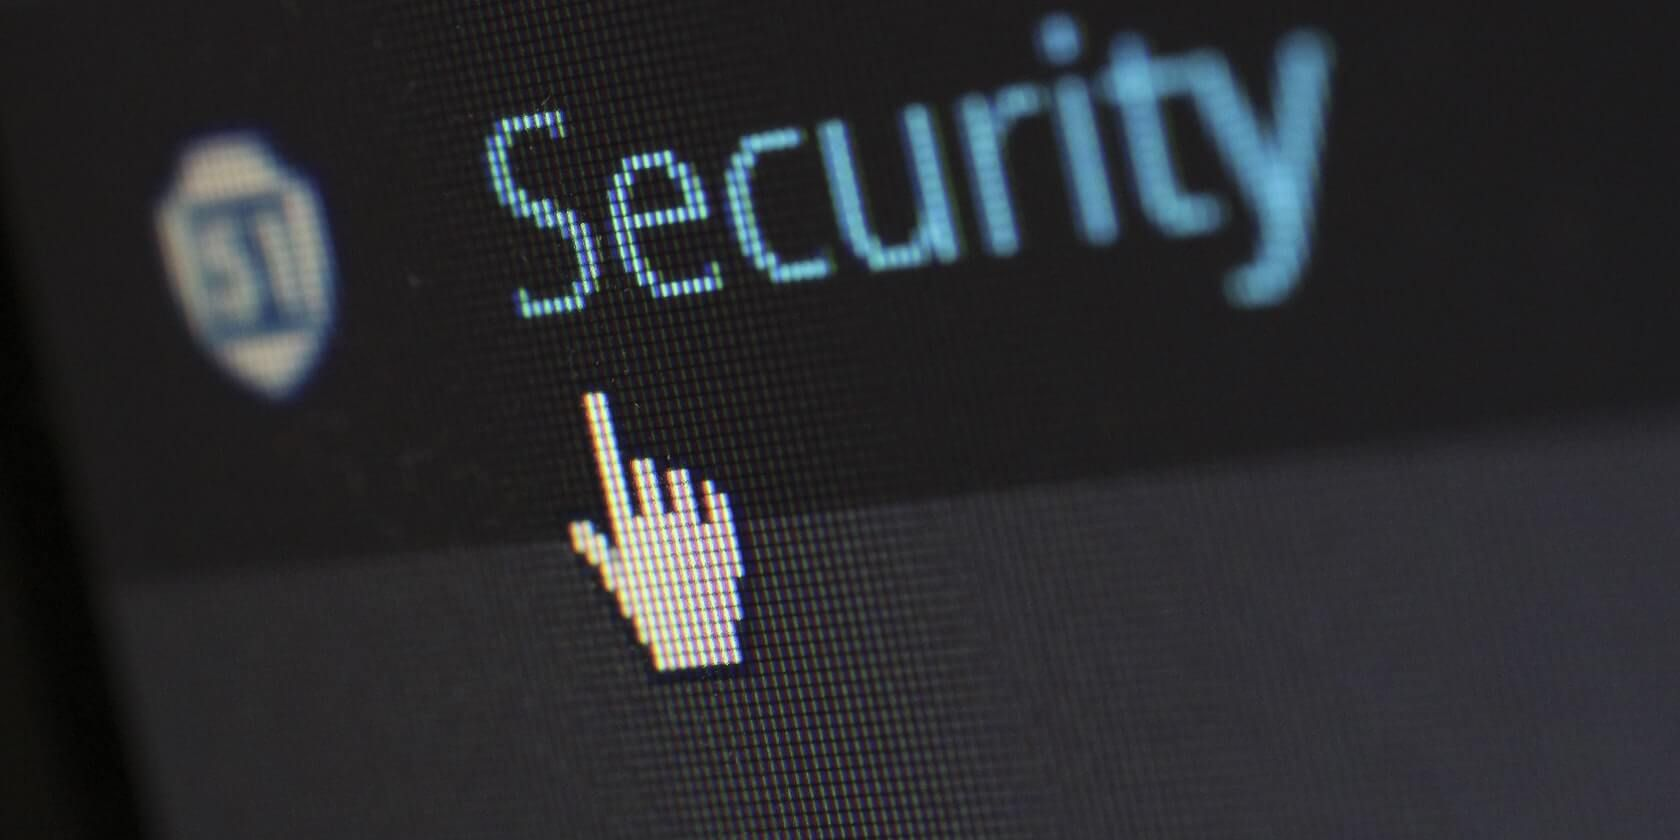 How to Secure Your WordPress Website in 5 Simple Steps